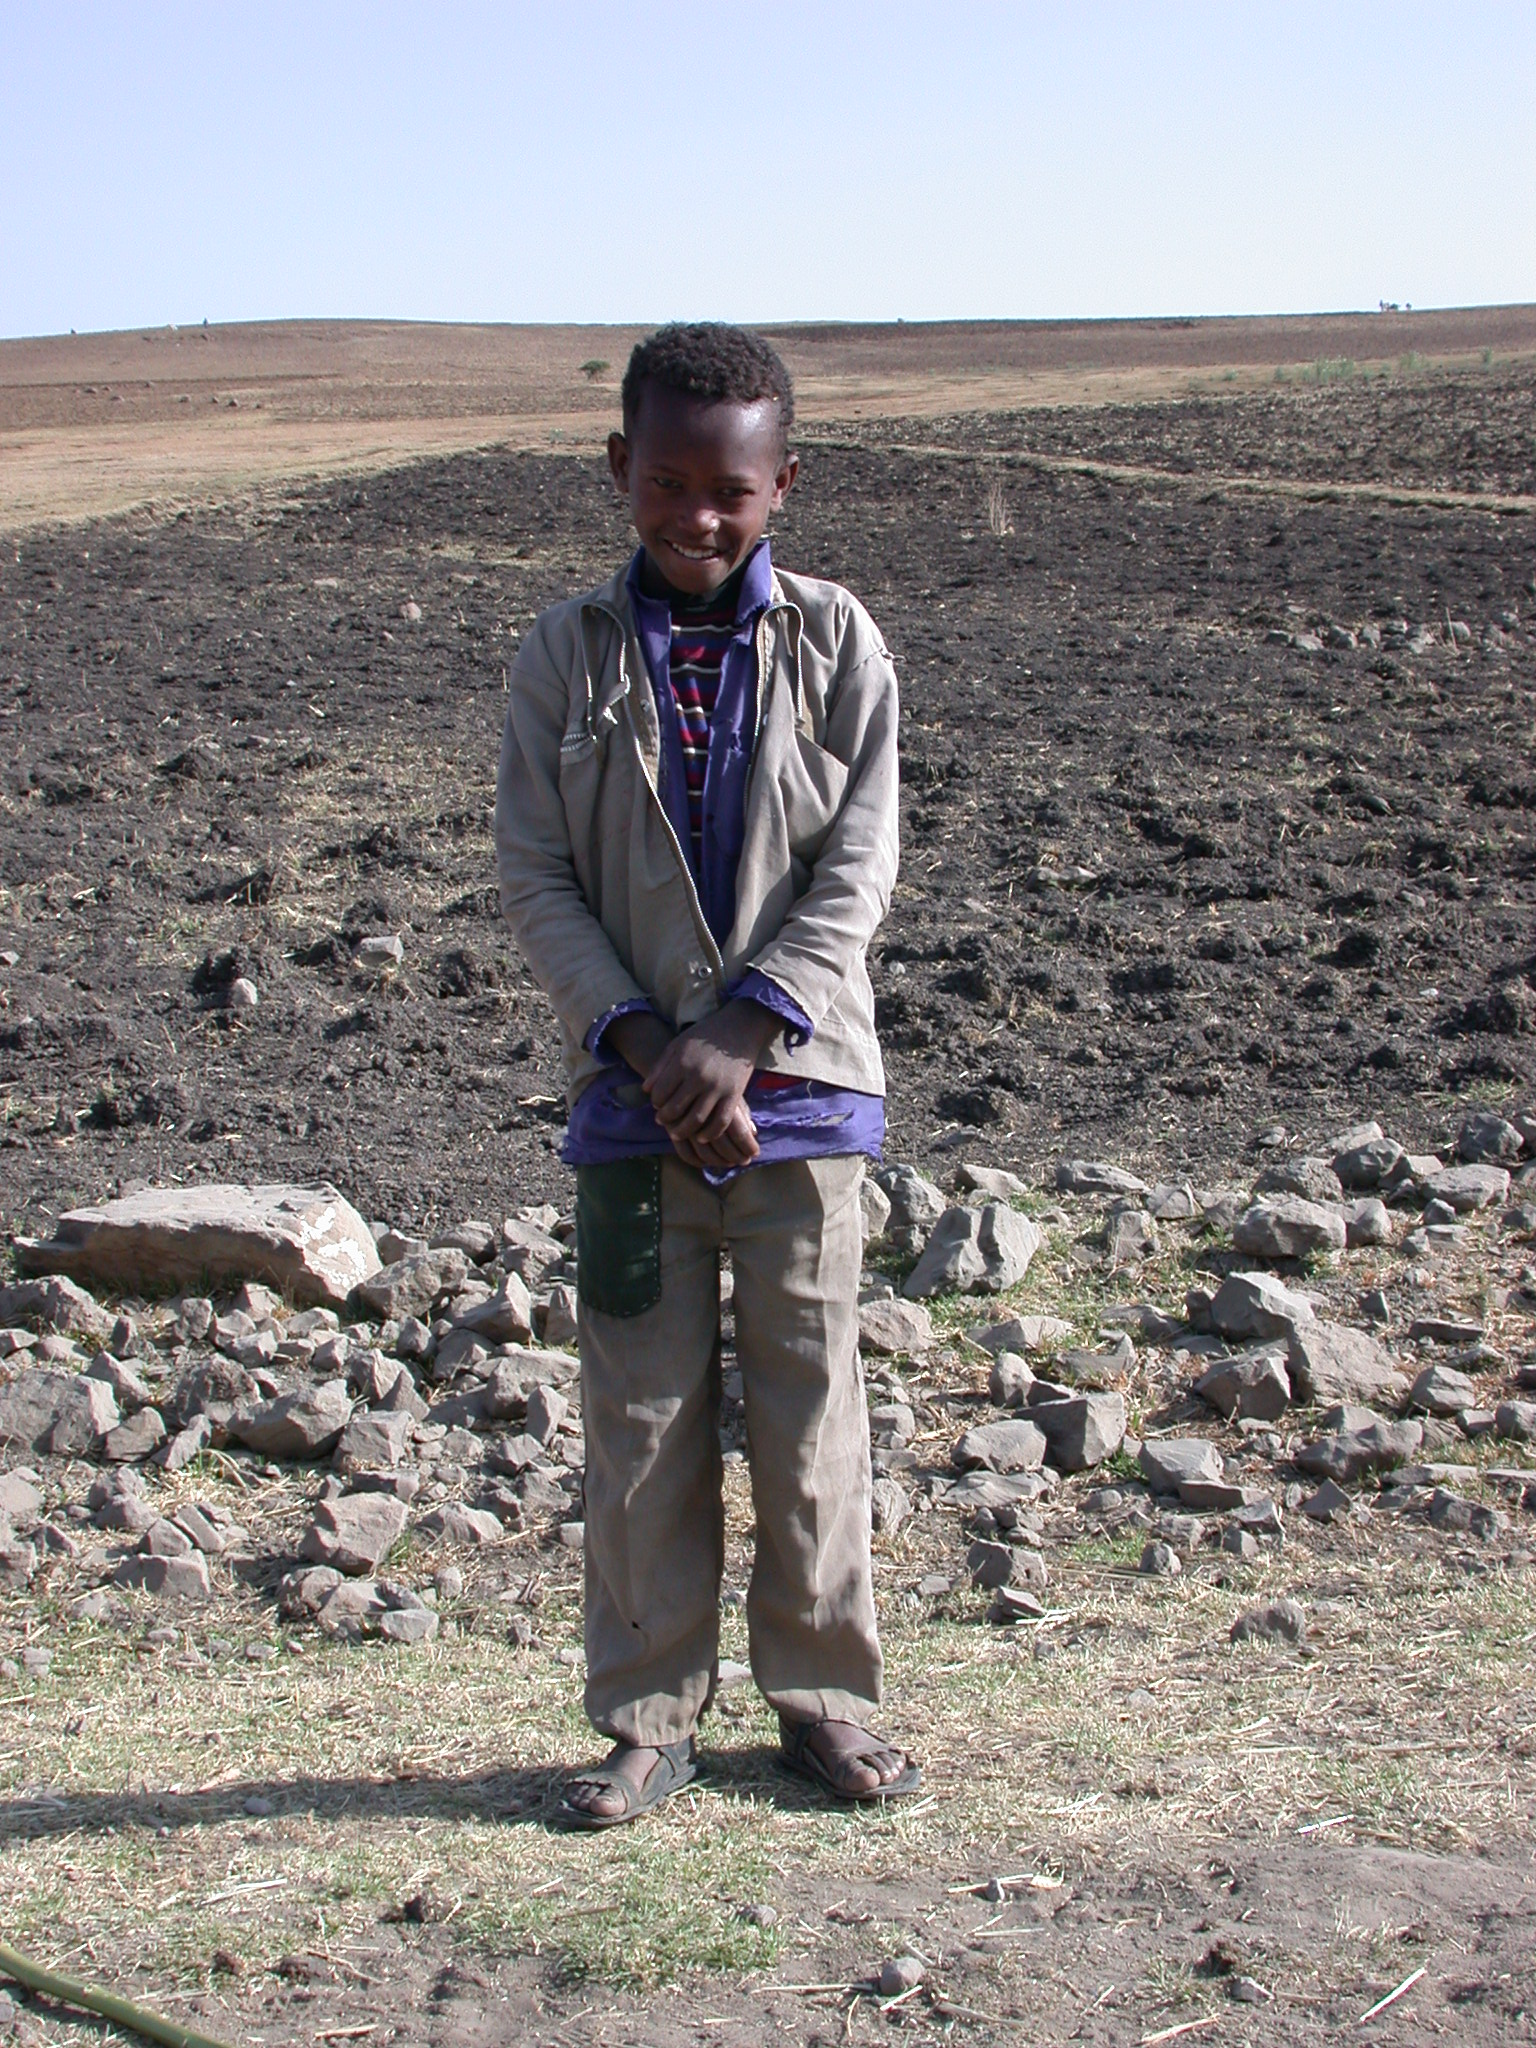 Resident of Village at Site of Bus Breakdown, Route From Gonder to Debark, Ethiopia